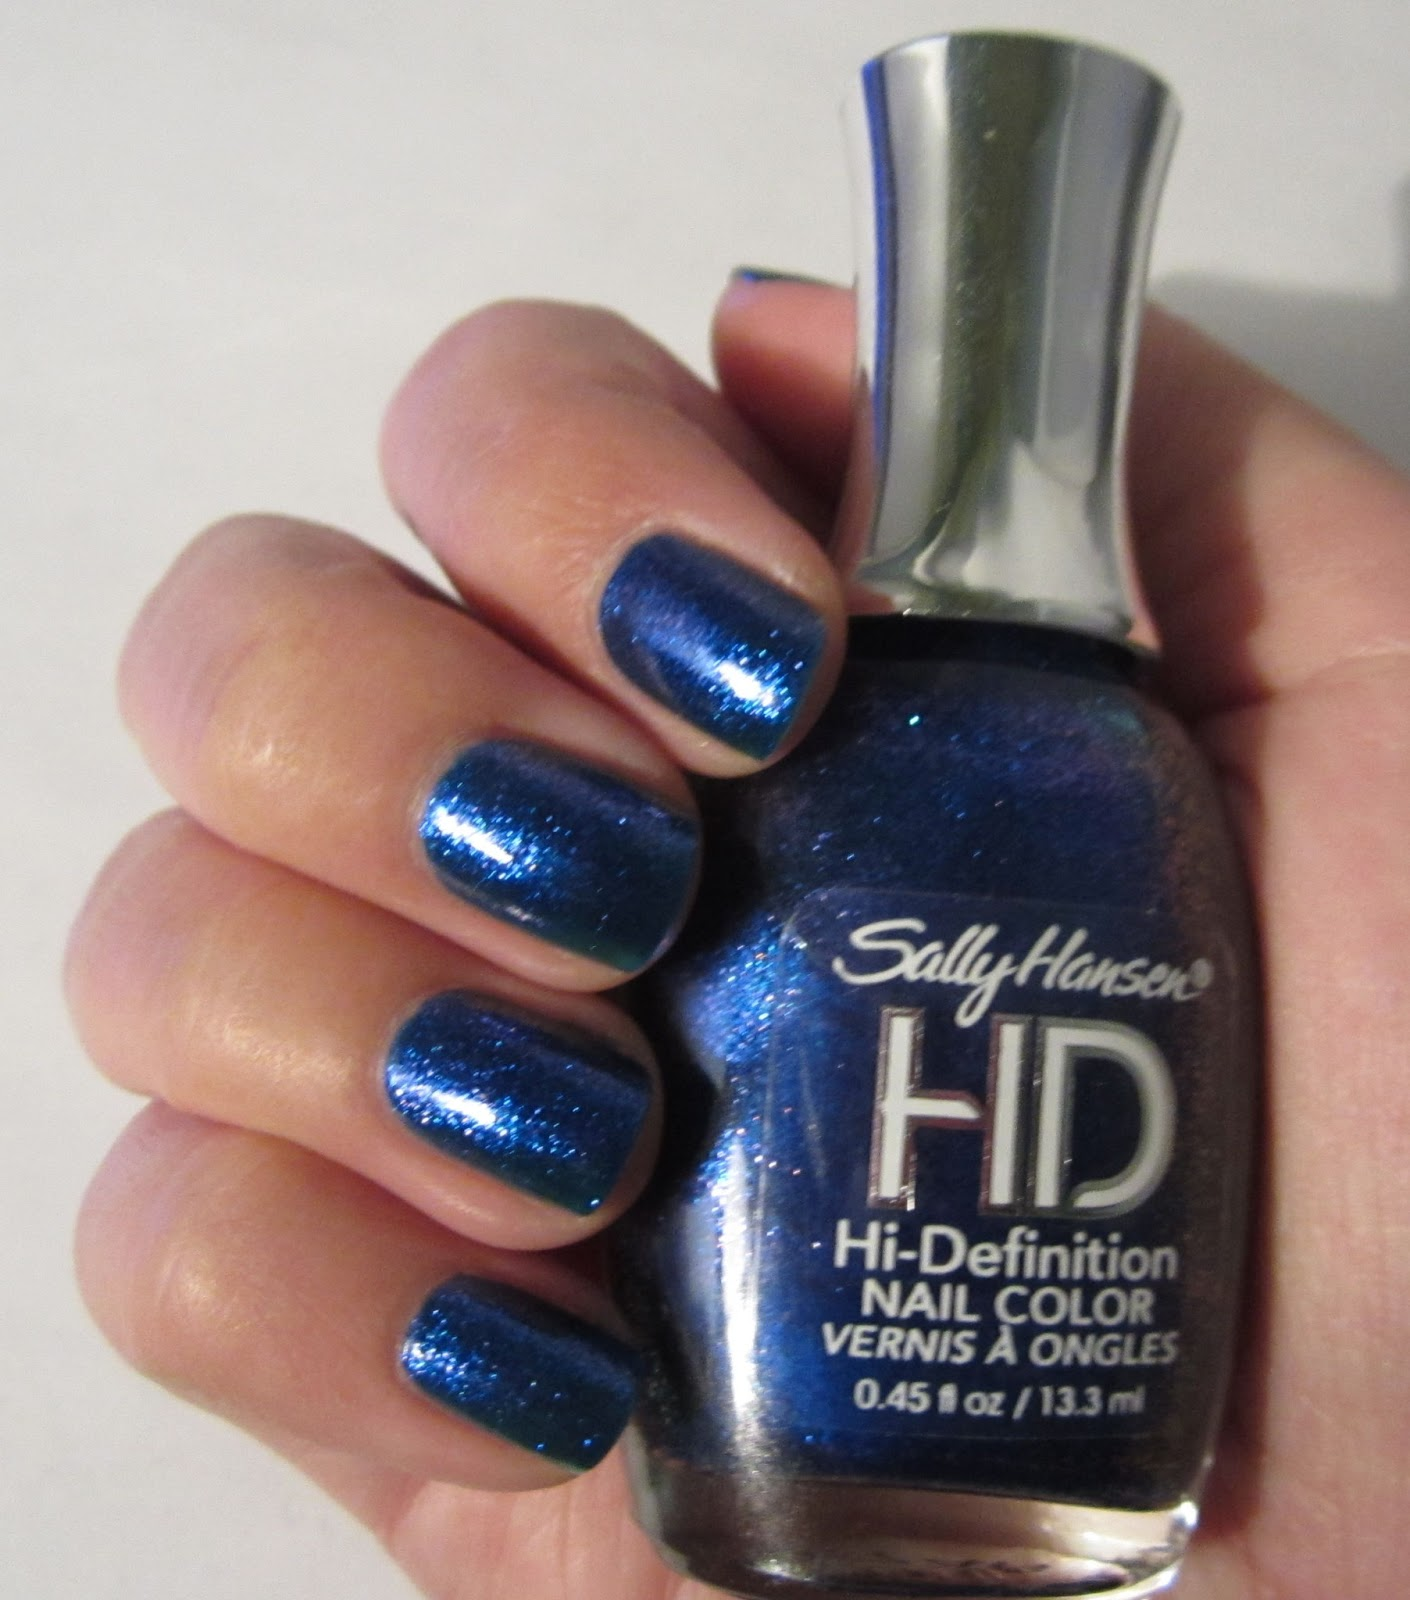 The Nailbourhood: Sally Hansen HD High Definition Nail Color in 16 Laser